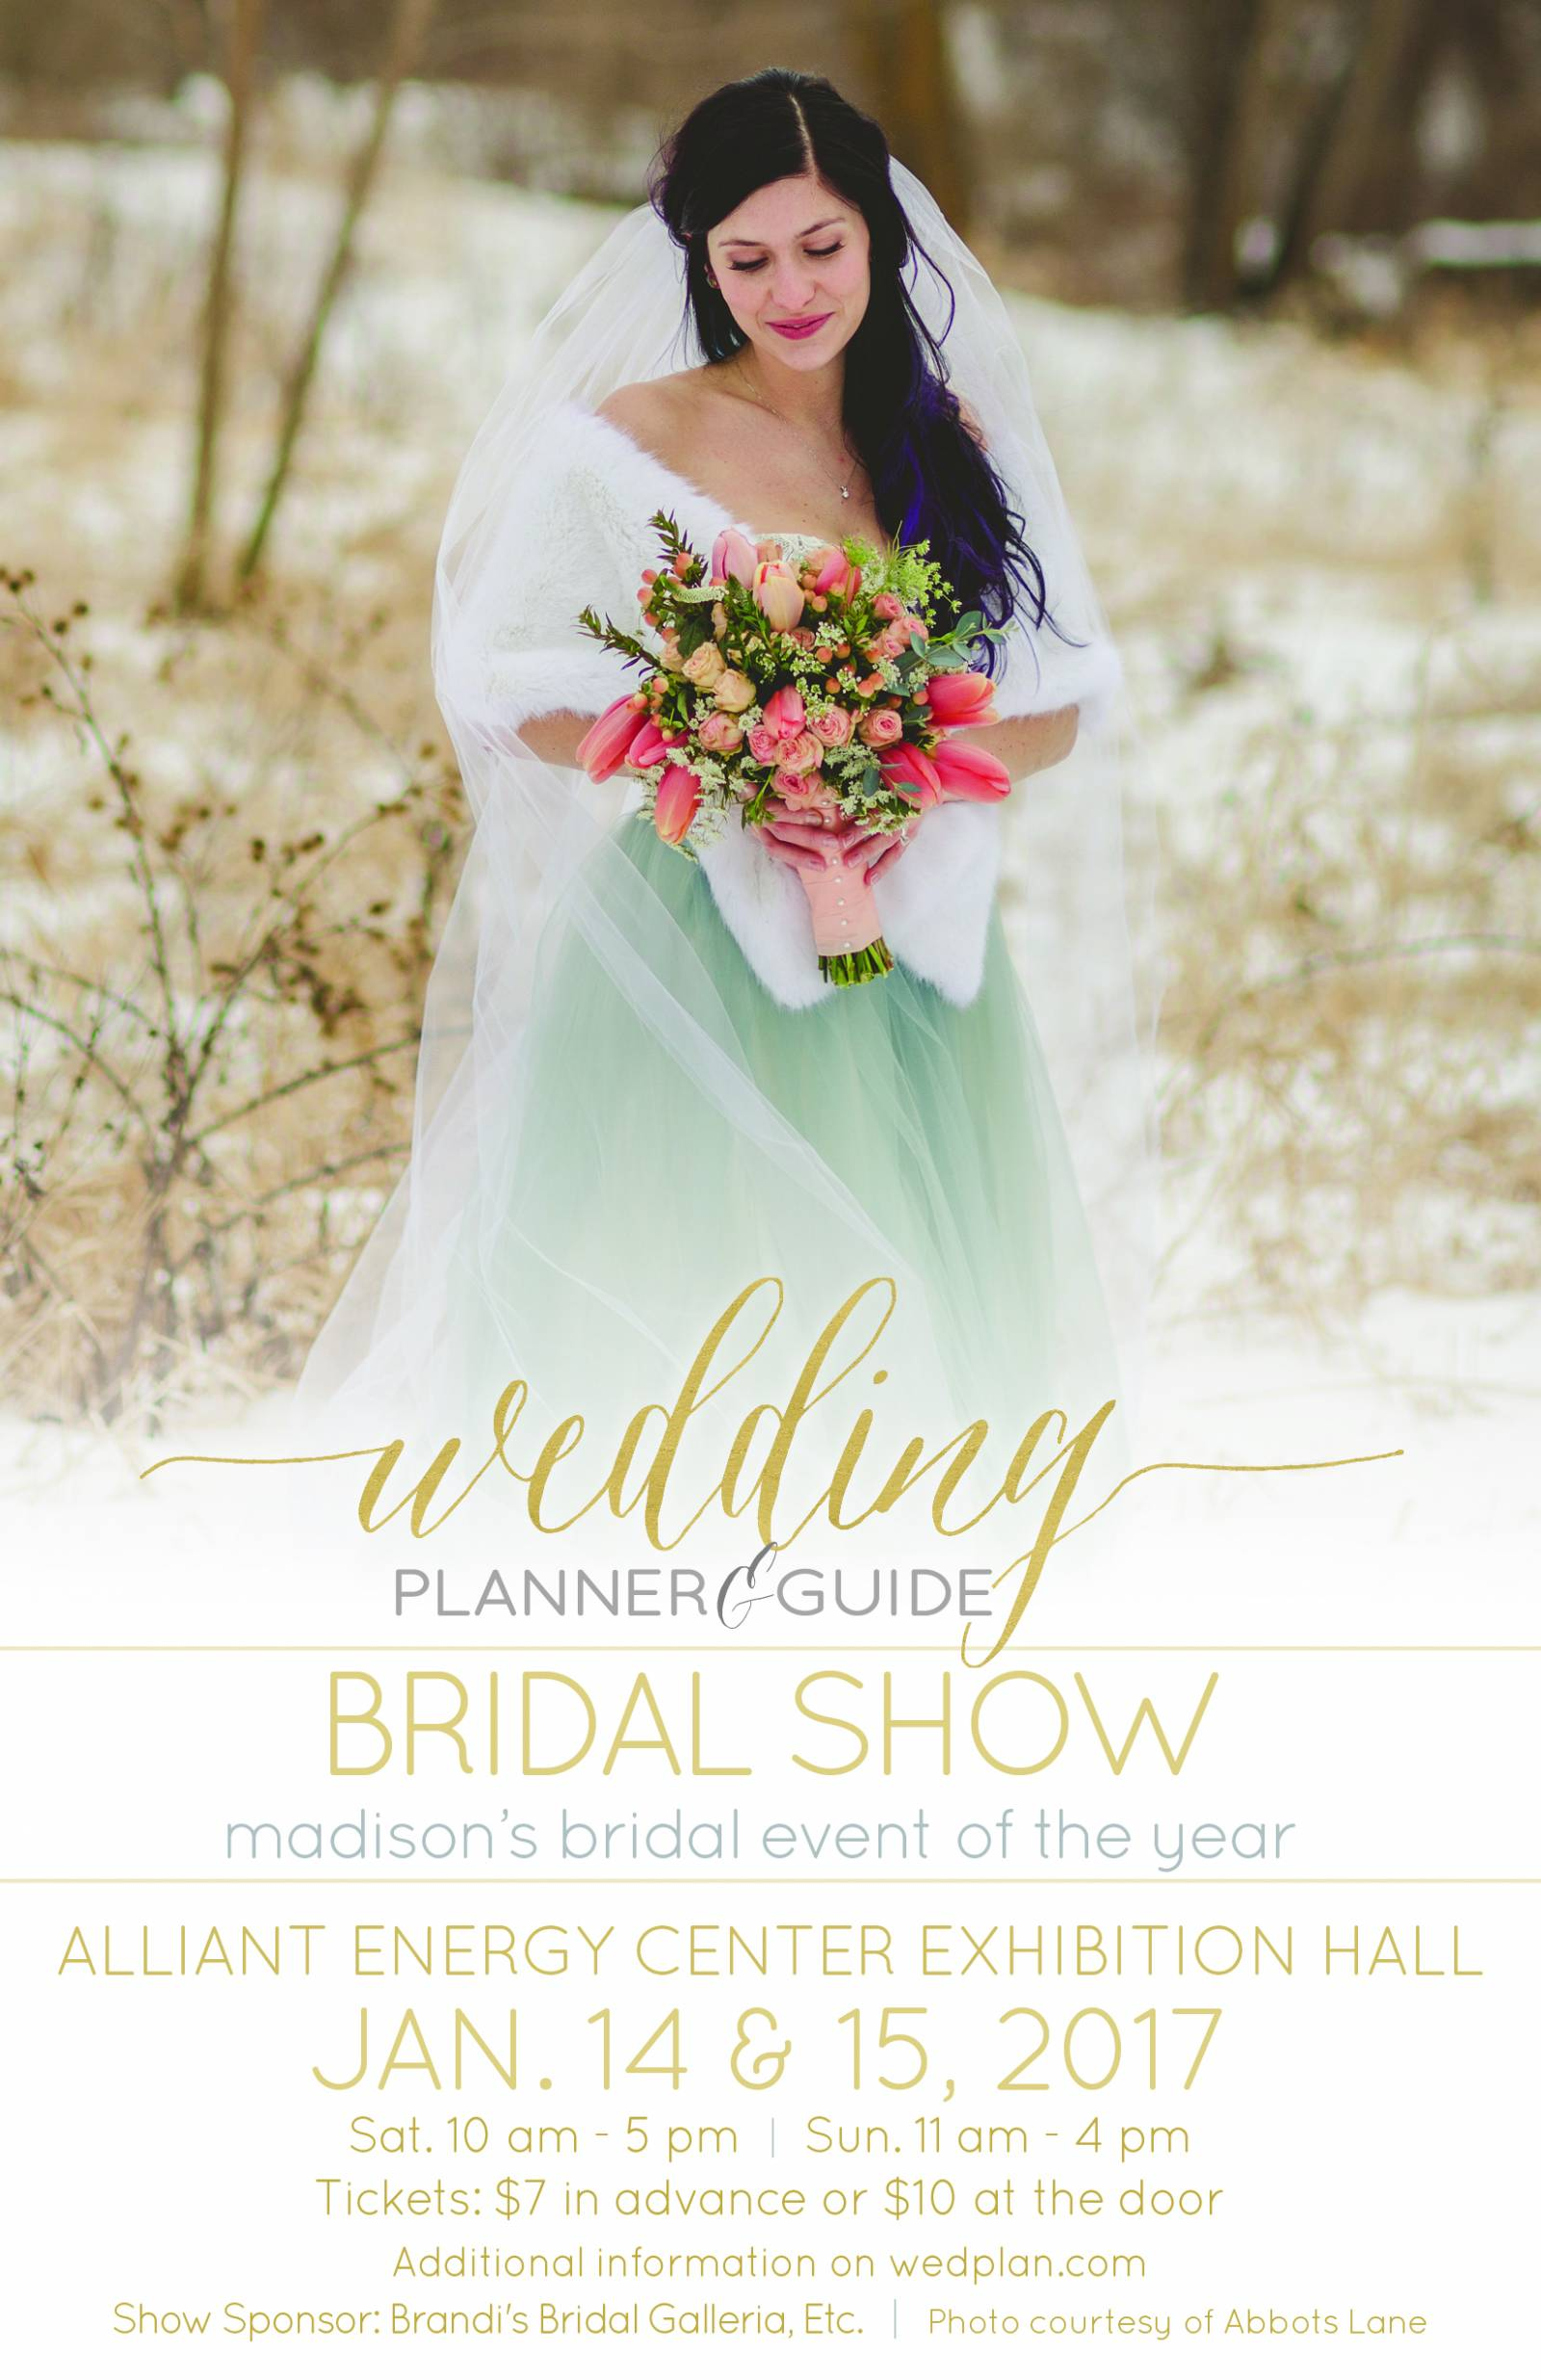 By Wedding Planner Guide